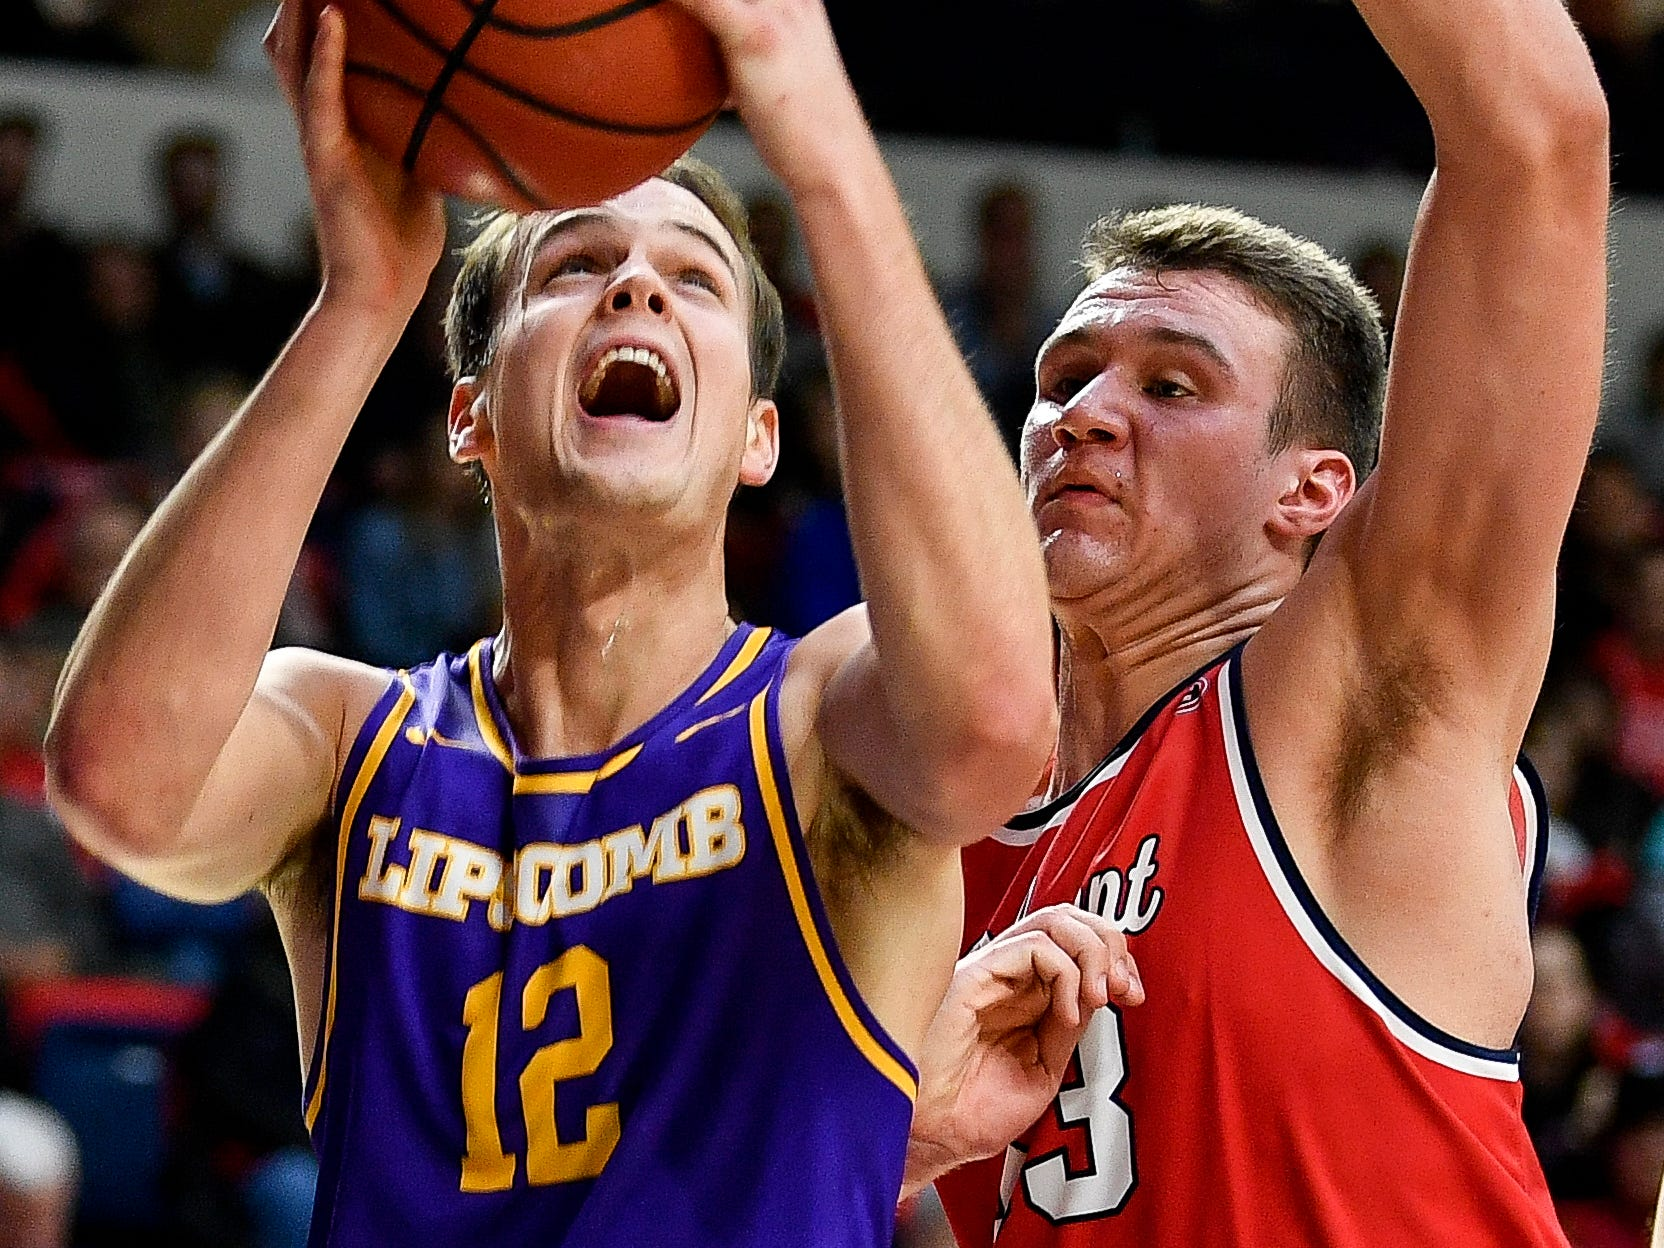 Lipscomb forward Matt Rose (12) shoots over Belmont center Nick Muszynski (33) during the second half at the Curb Event Center in Nashville, Tenn., Tuesday, Dec. 4, 2018.